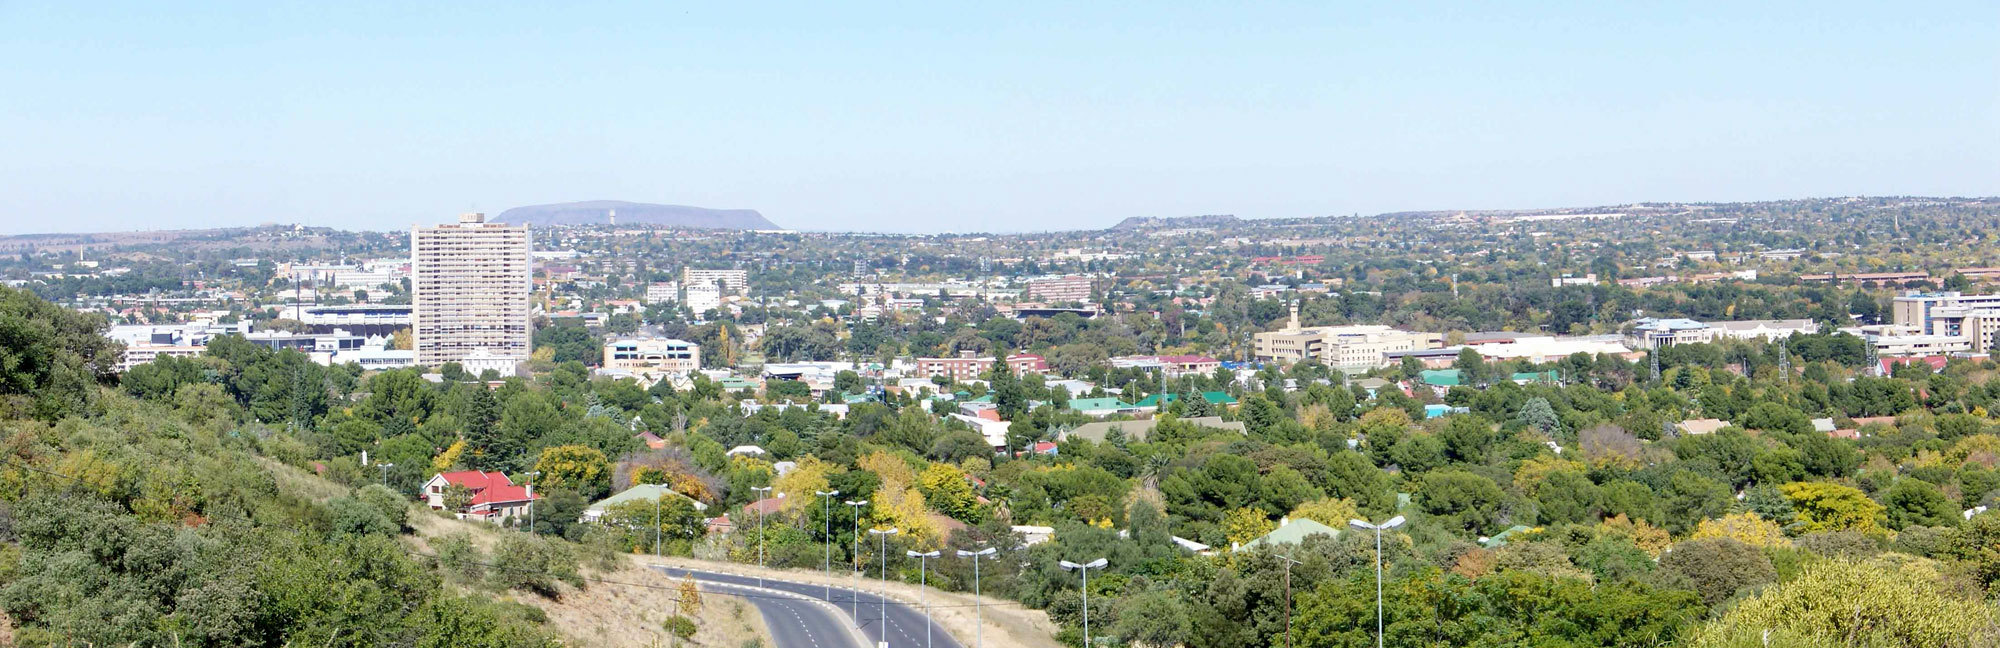 South Africa images